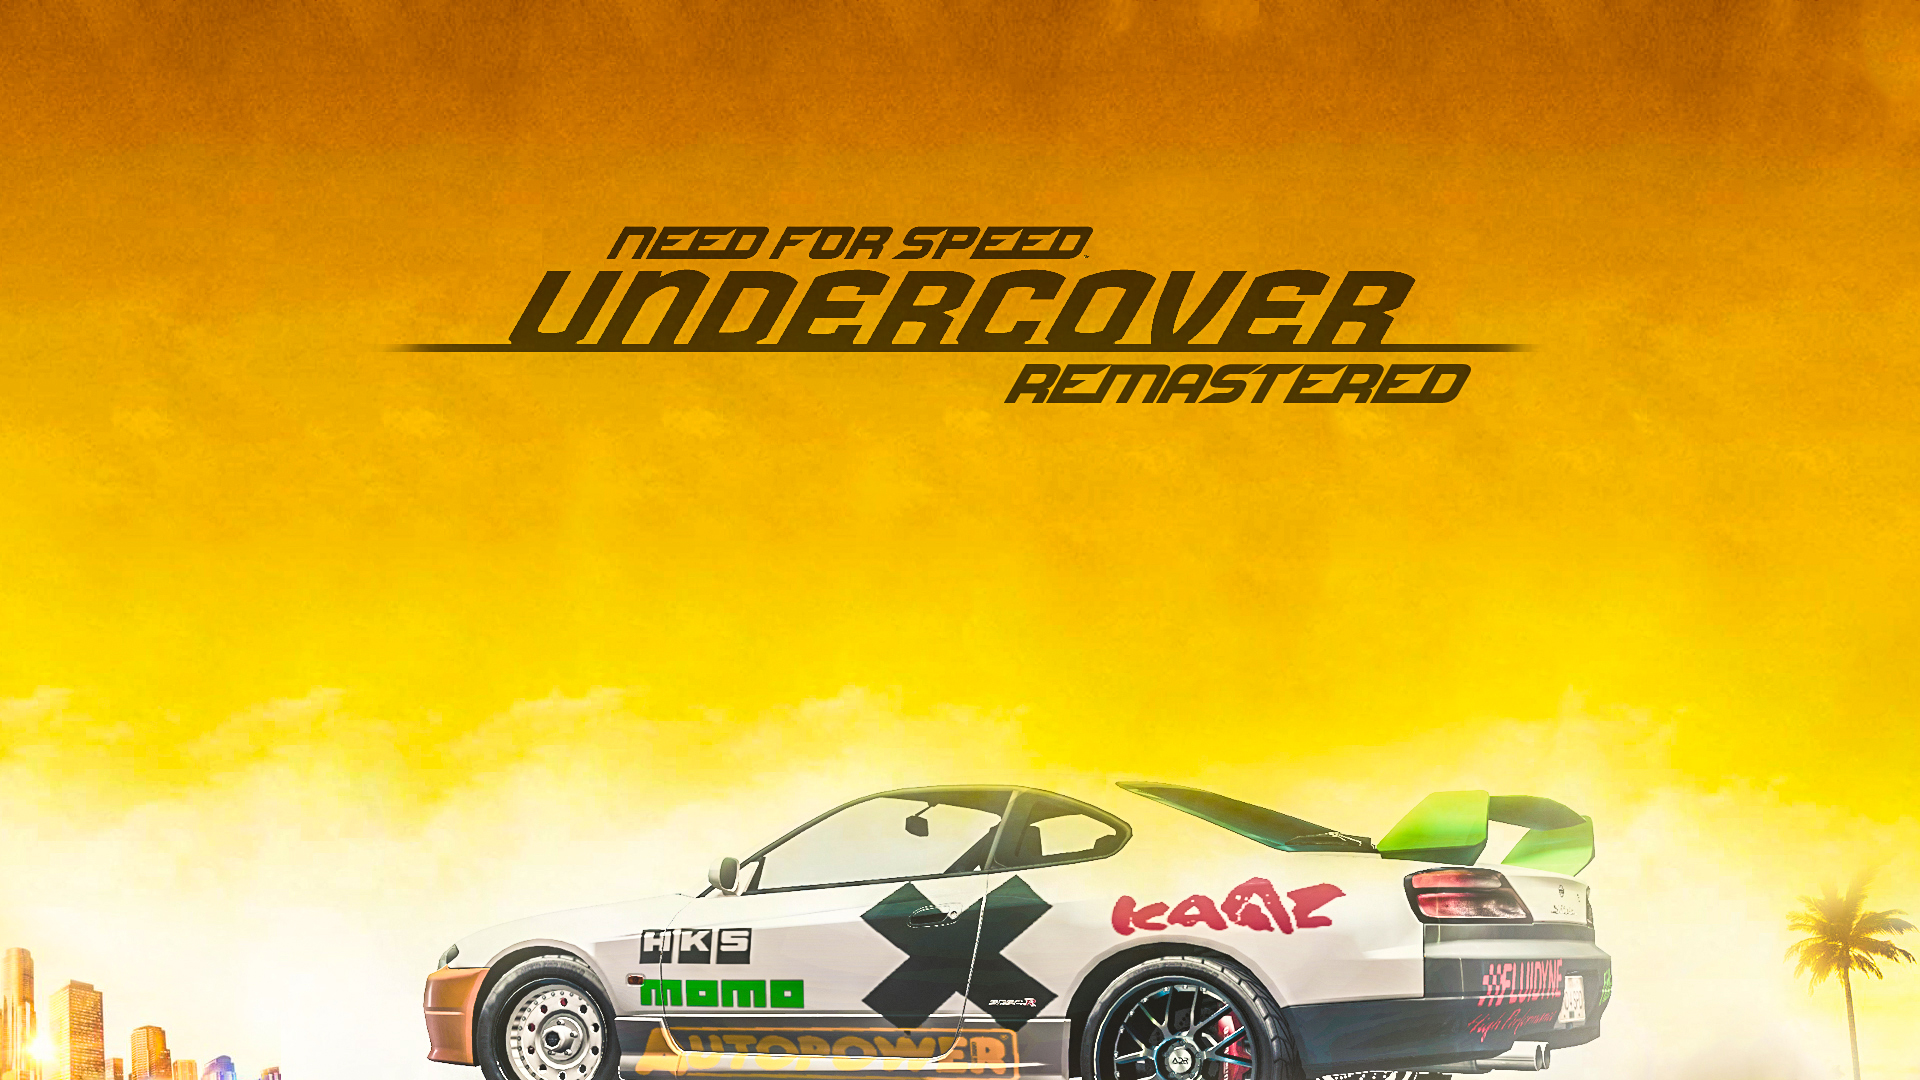 SPEED DOWNLOAD PARA PACK NEED FOR TEXTURE HD GRATUITO MOD UNDERCOVER